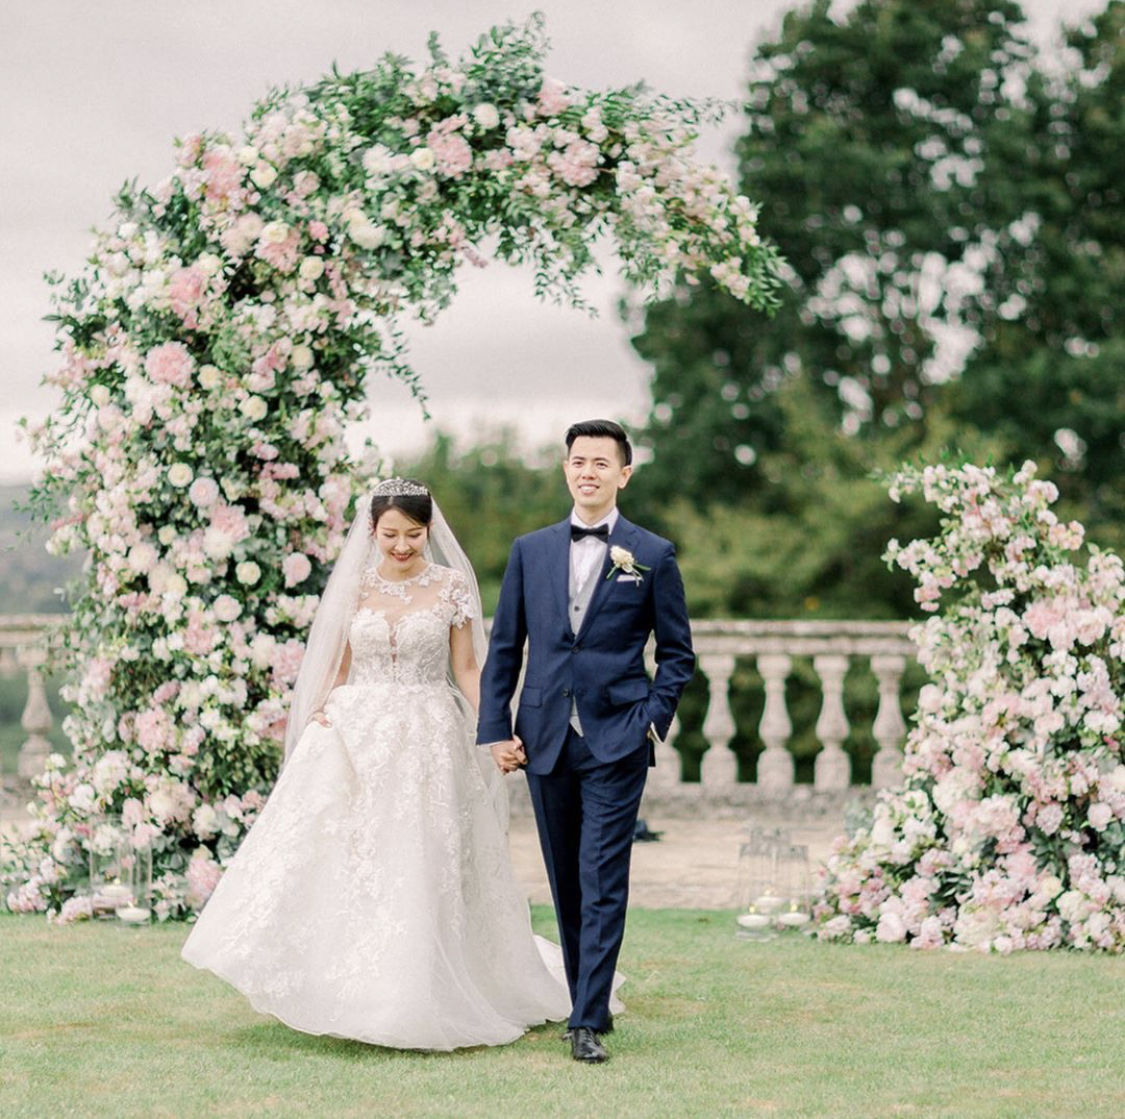 Wedding at Cliveden House